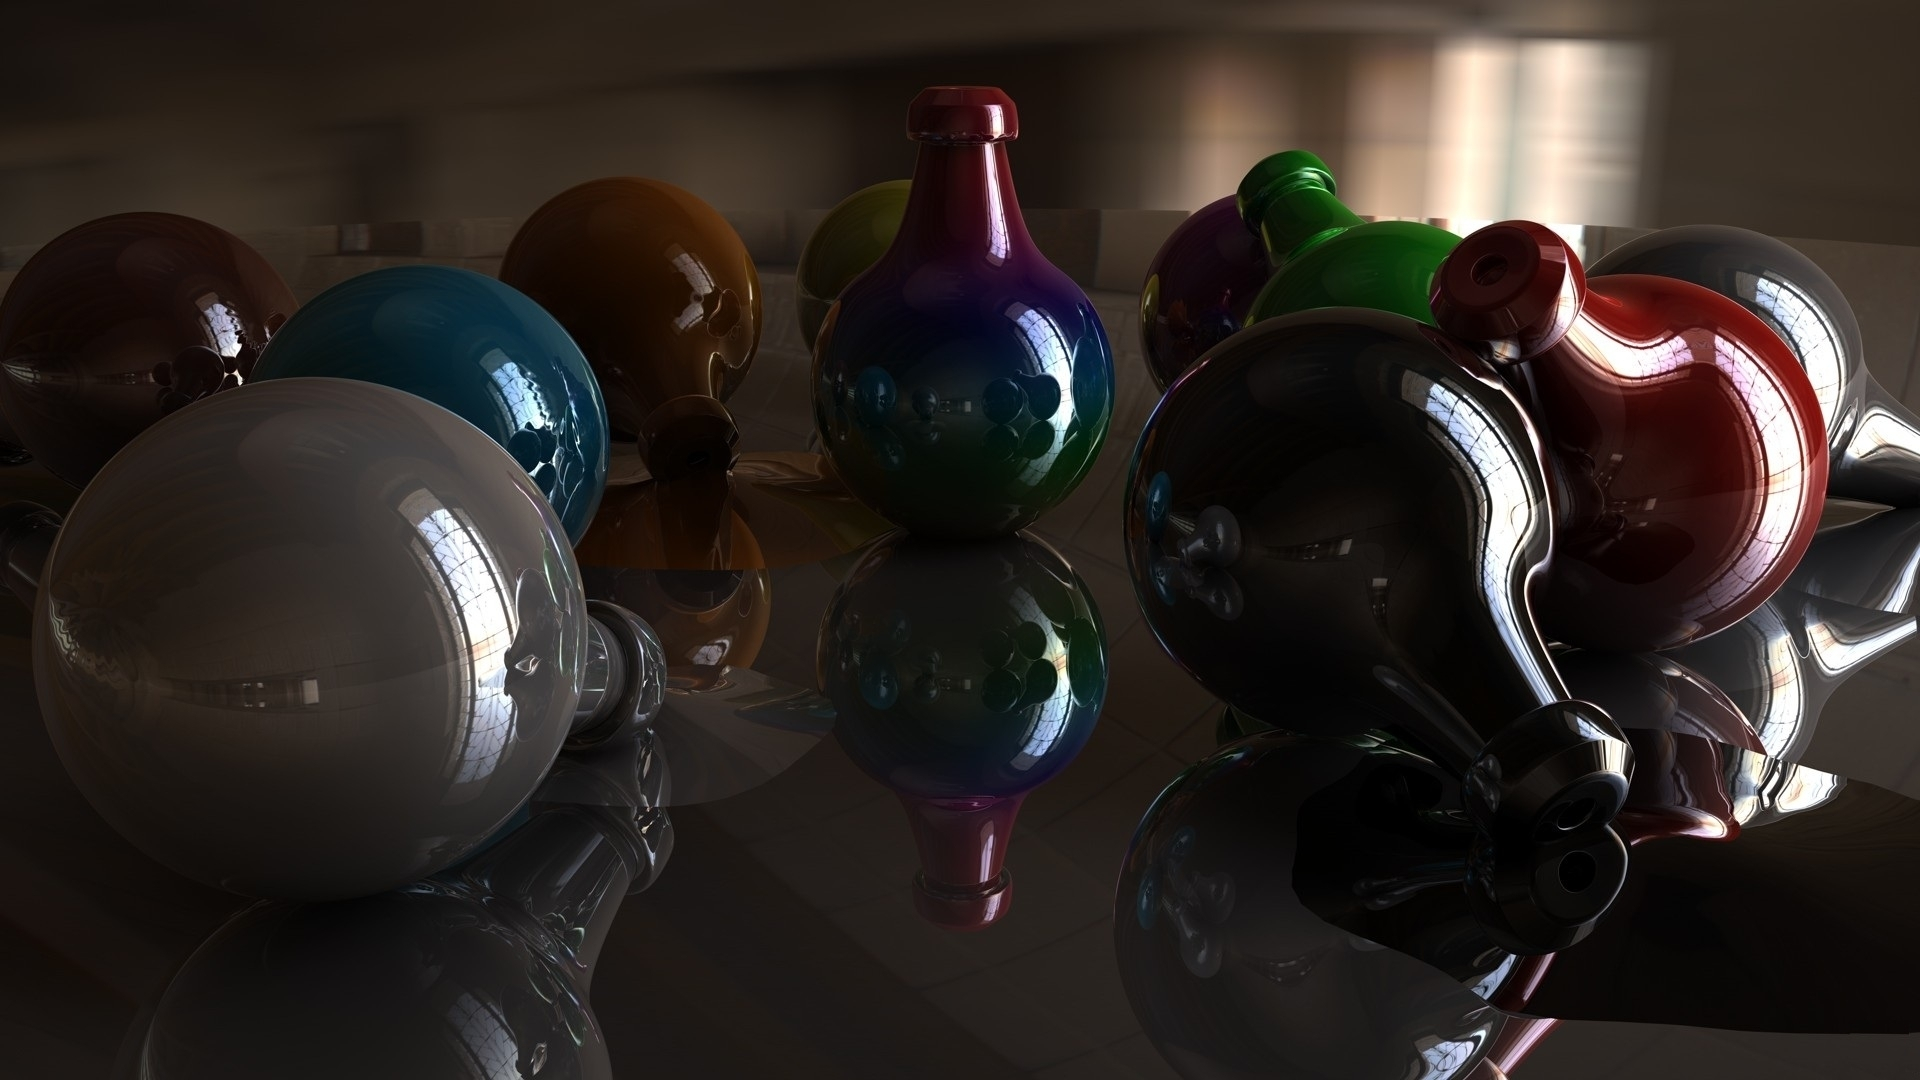 BALLS COLOR SHADOW 0348 1920x1080 pixel Hd Wallpaper 1920x1080